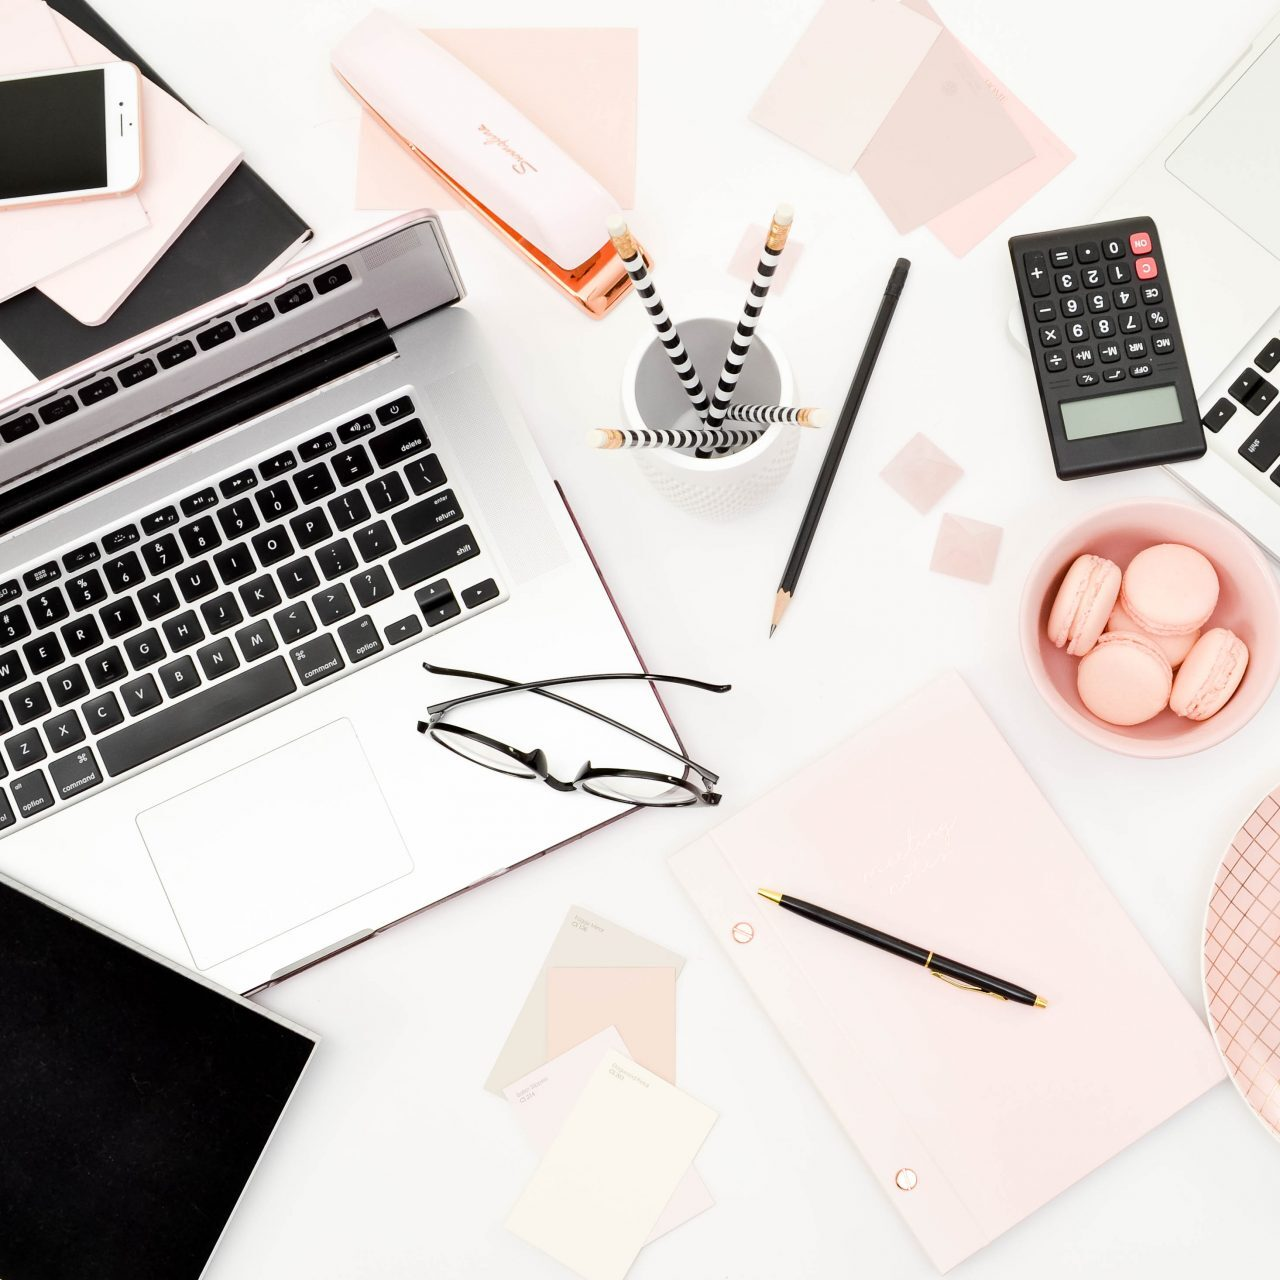 2019 Content Marketing Strategy to Explode Your Blog Traffic